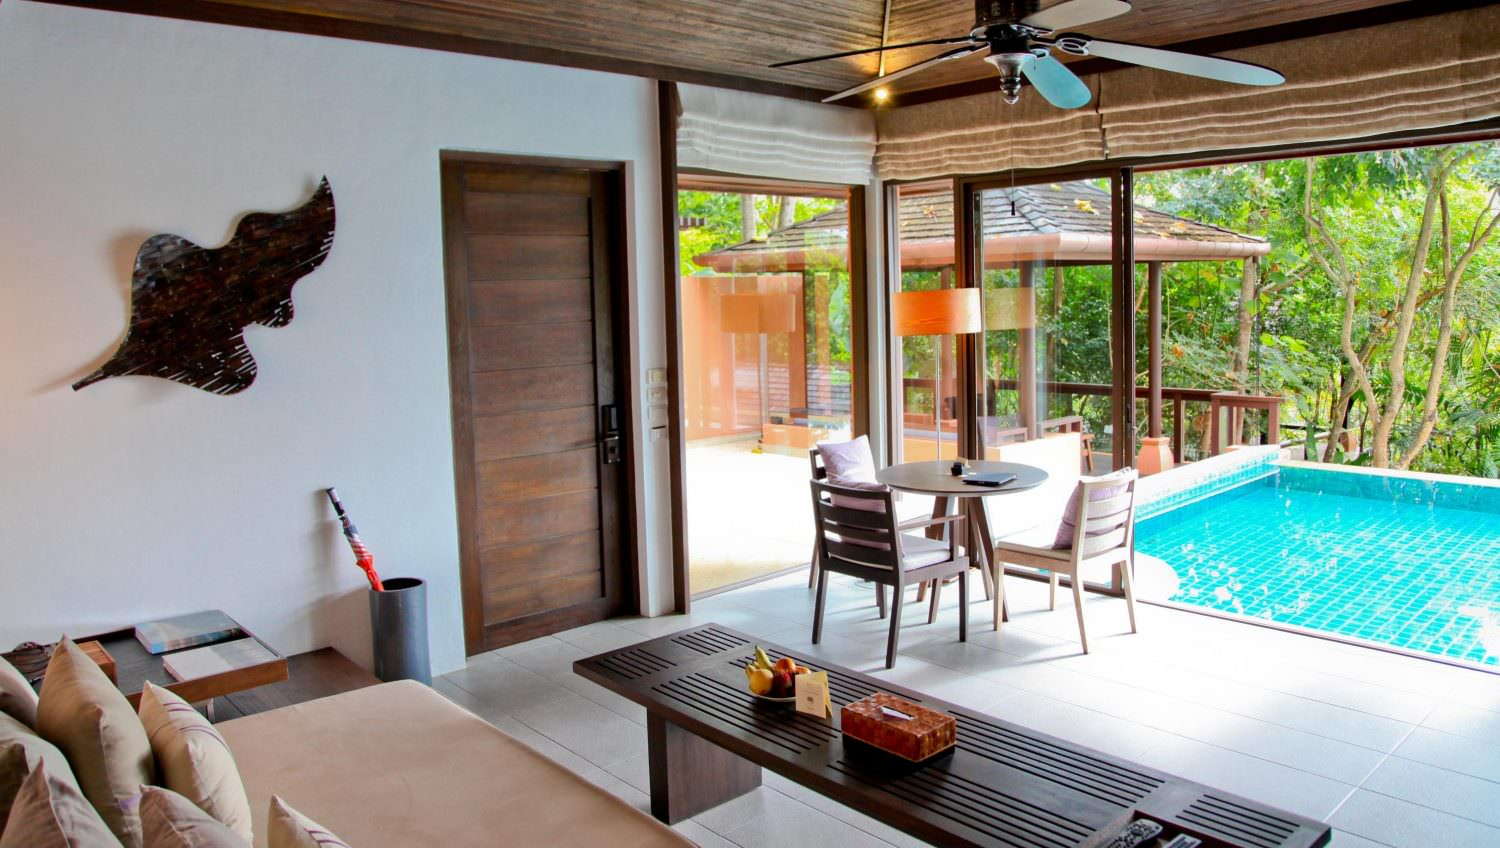 3-One-Bedroom-Pool-Villa-Garden-View-Sri-Panwa-Hotel-Phuket-Resort-Spa